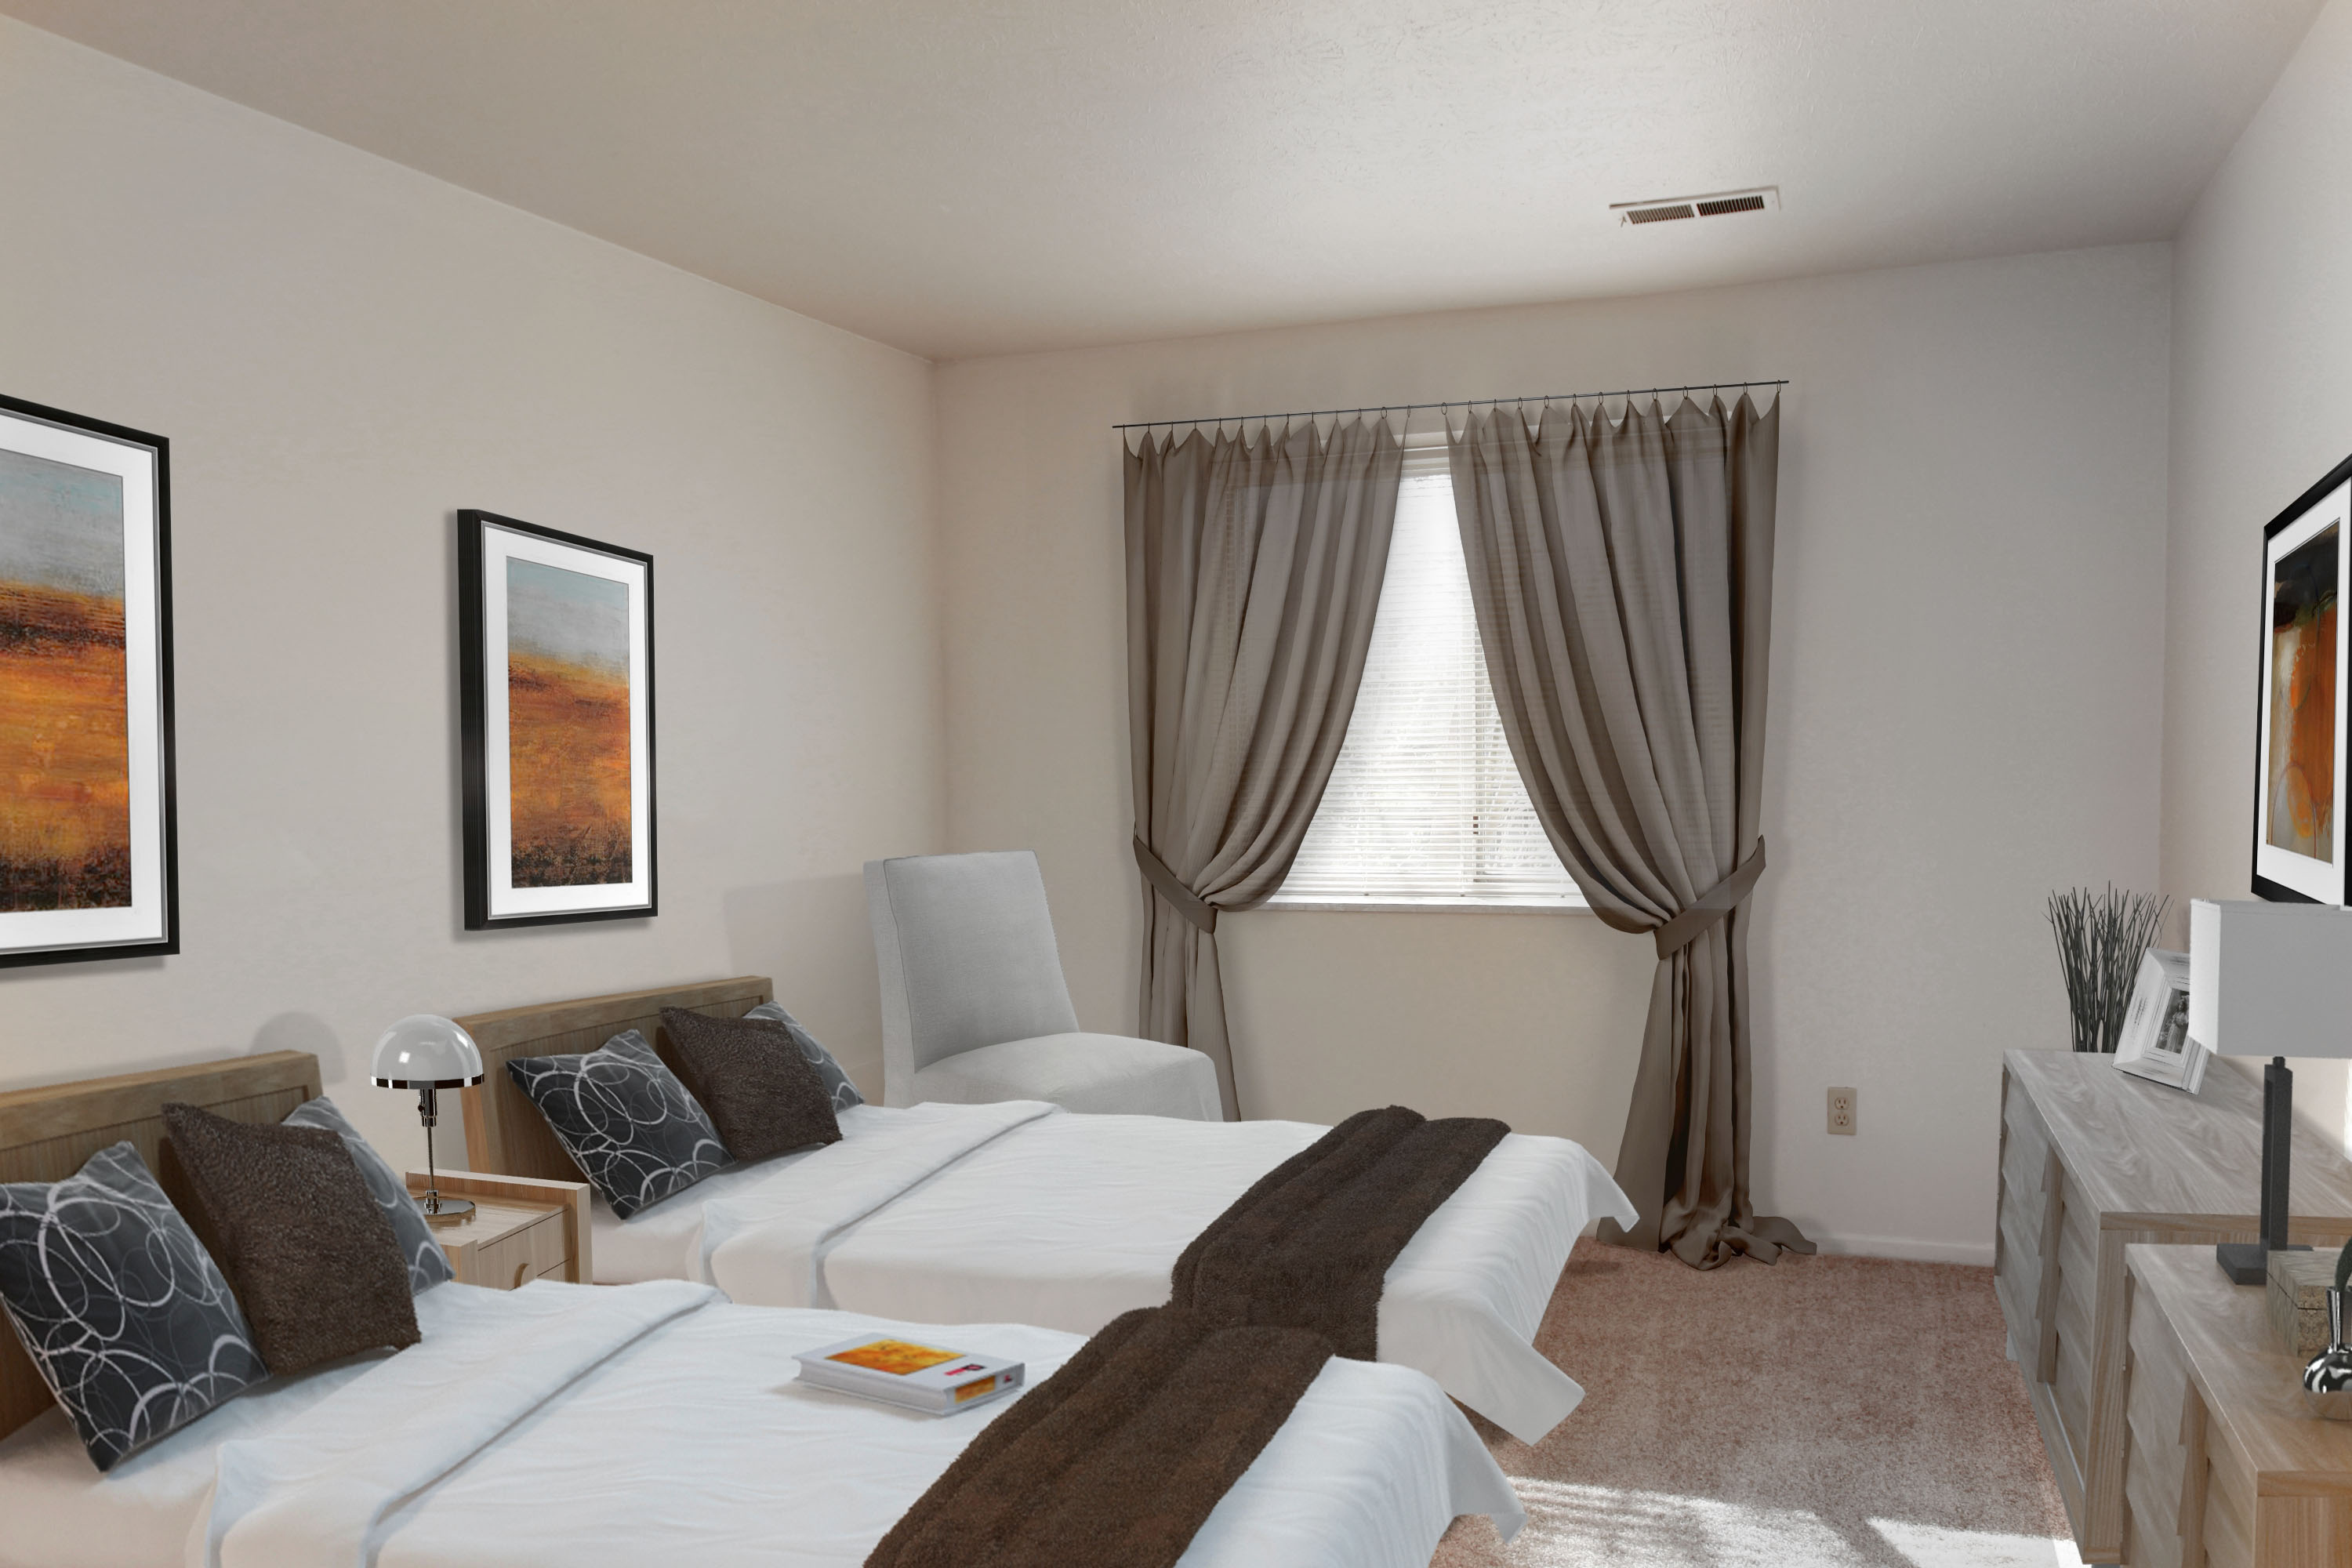 2A Bedroom #2 Furnished at the Greenridge on Euclid Apartments in Euclid, OH